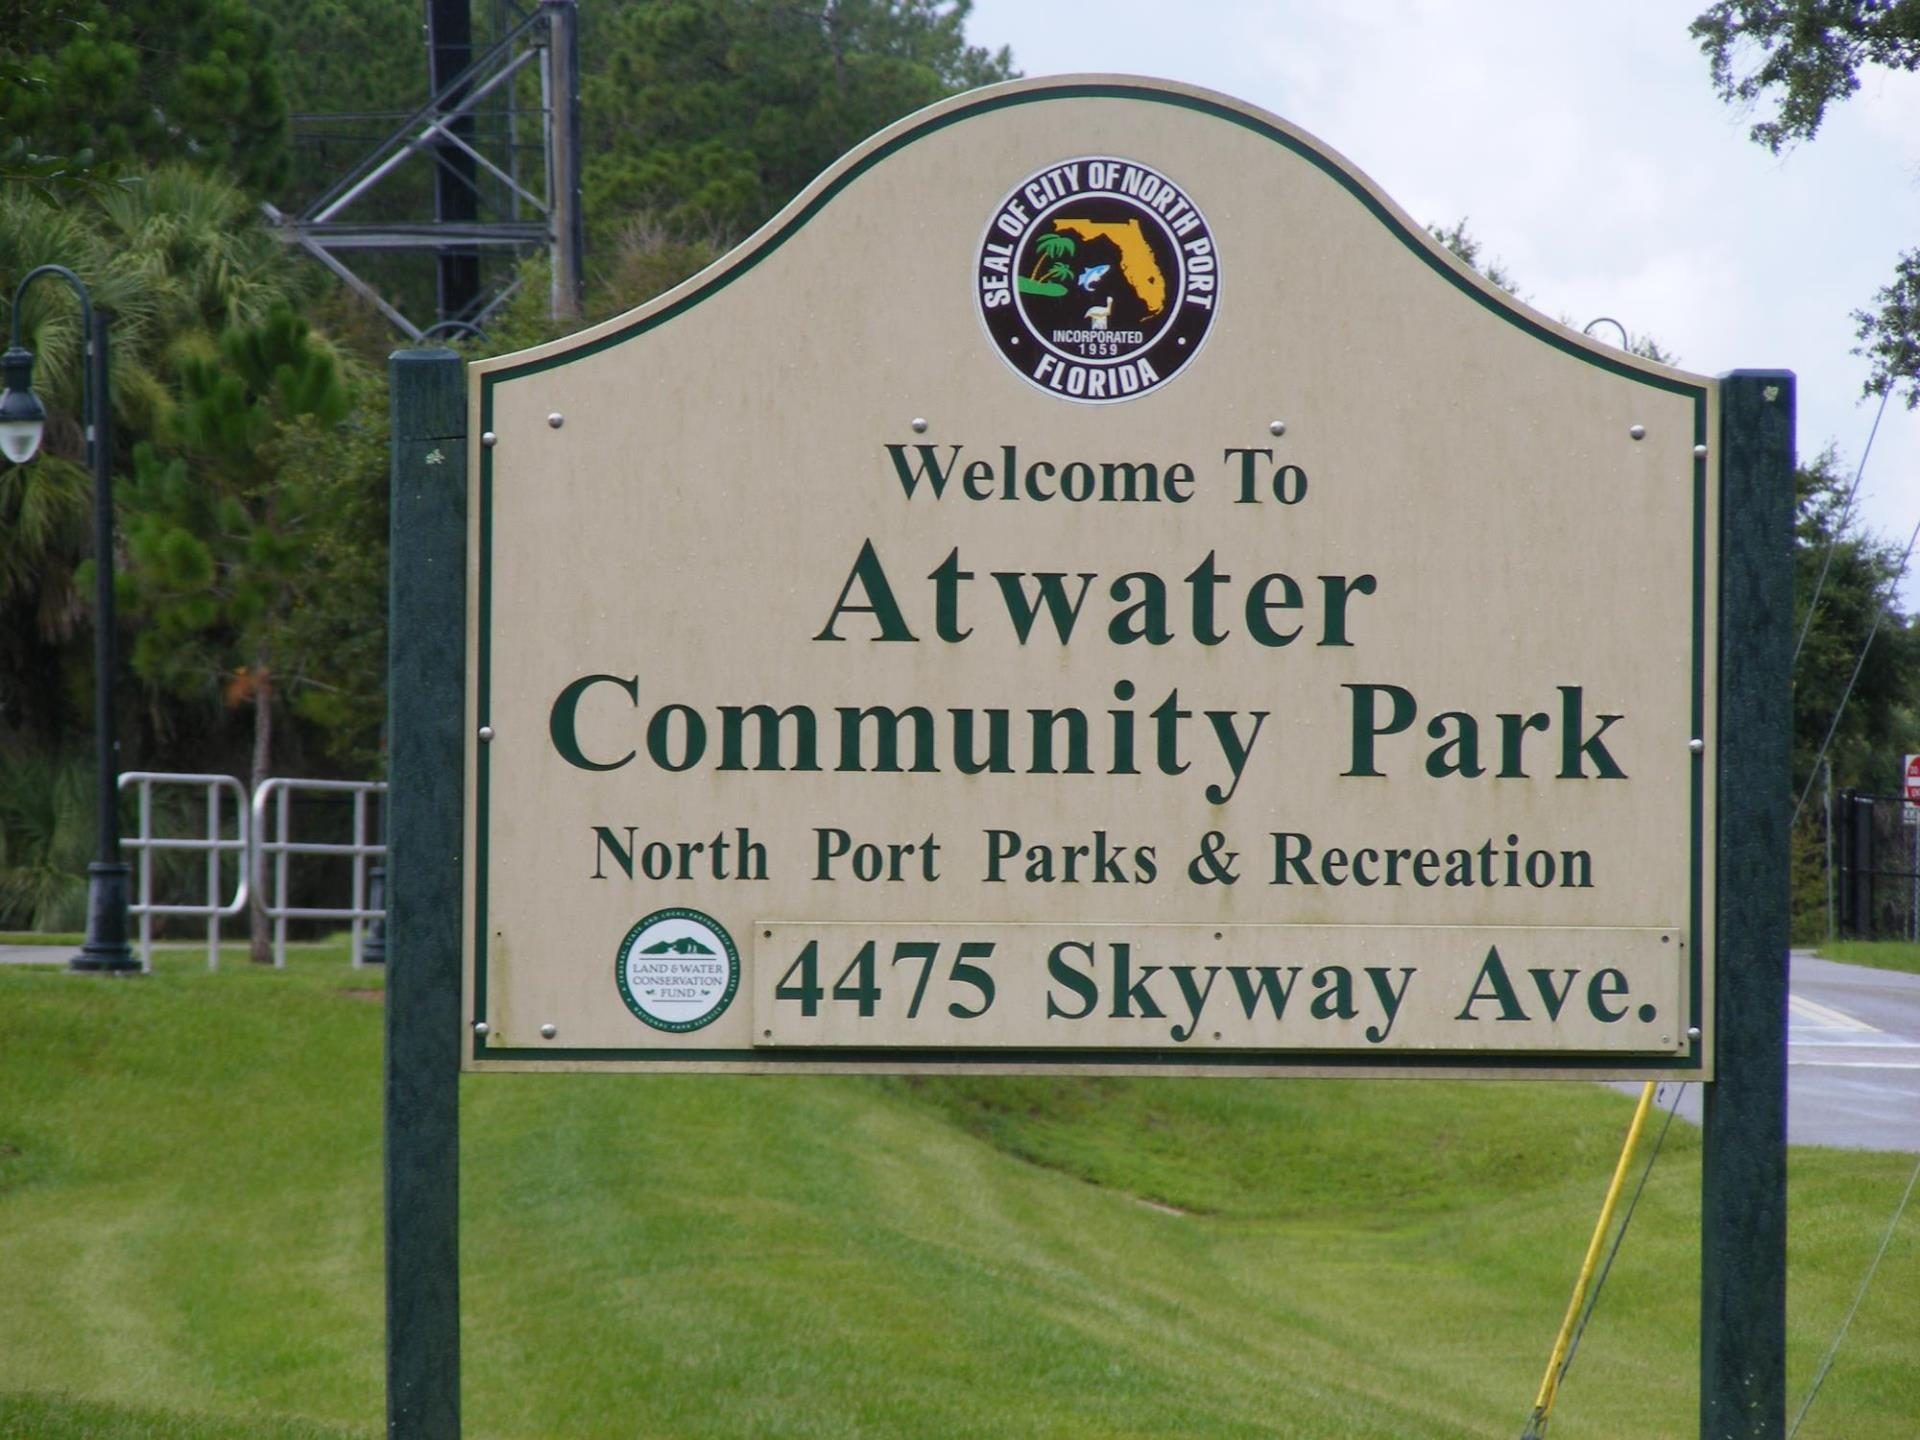 Atwater Communbity Park